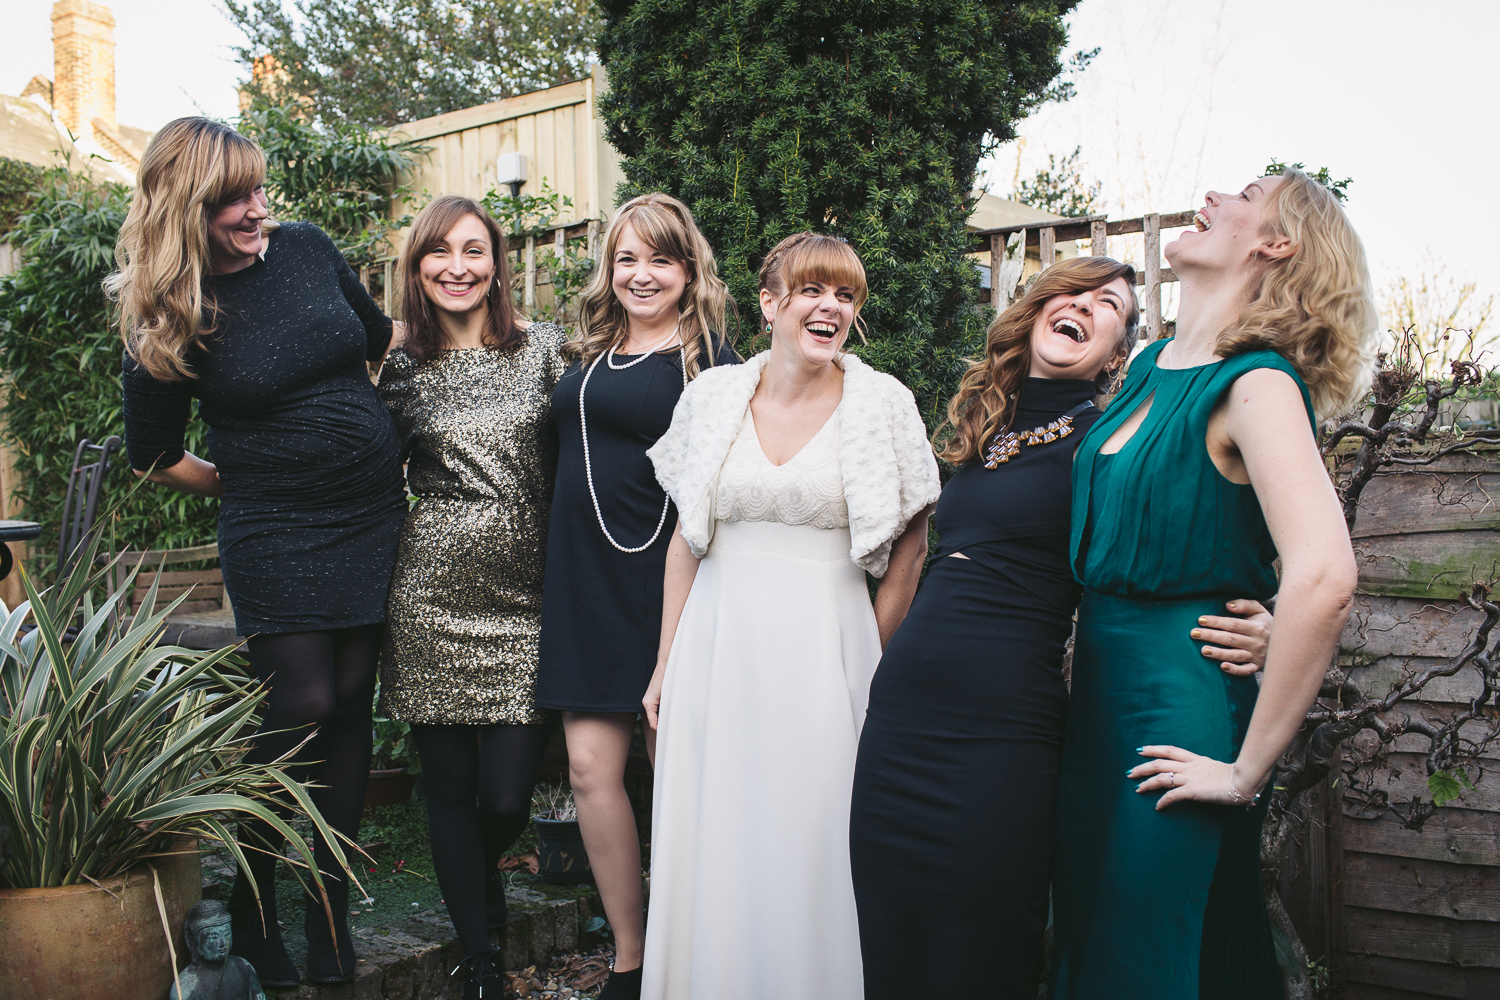 Winter wedding, the bride and her girlfriends